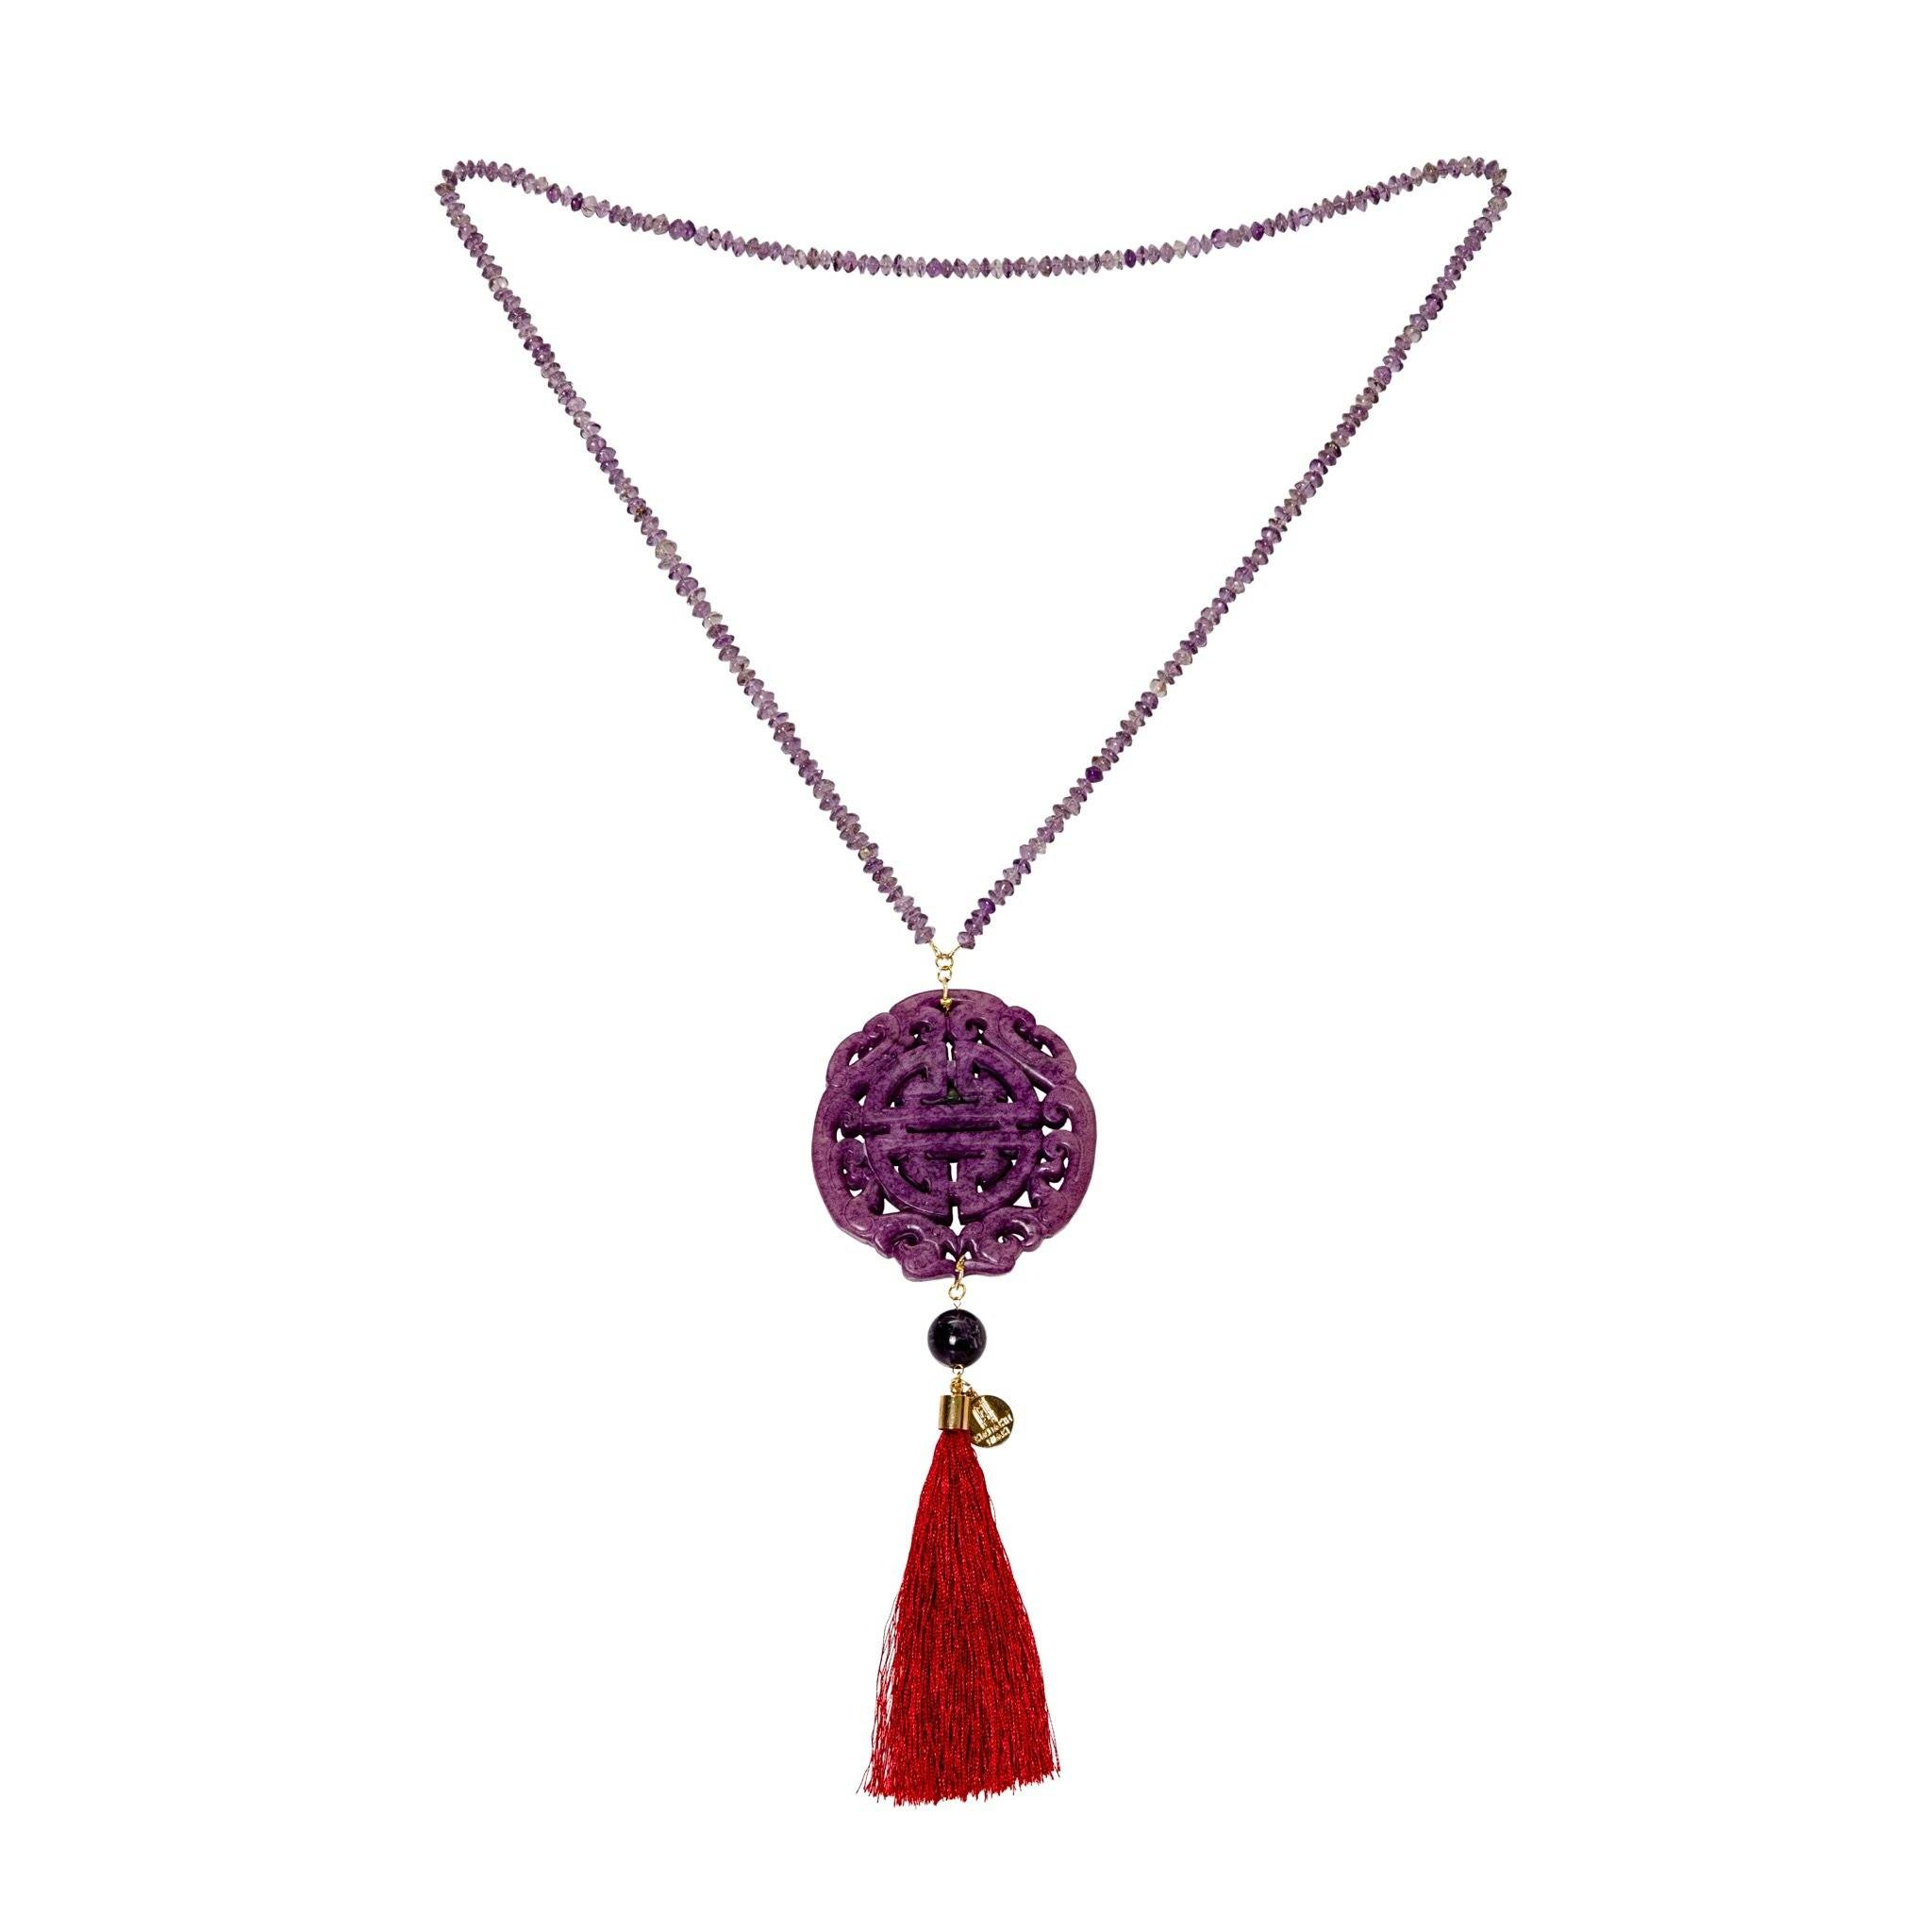 HONG KONG purple amethyst necklace - MadamSiam